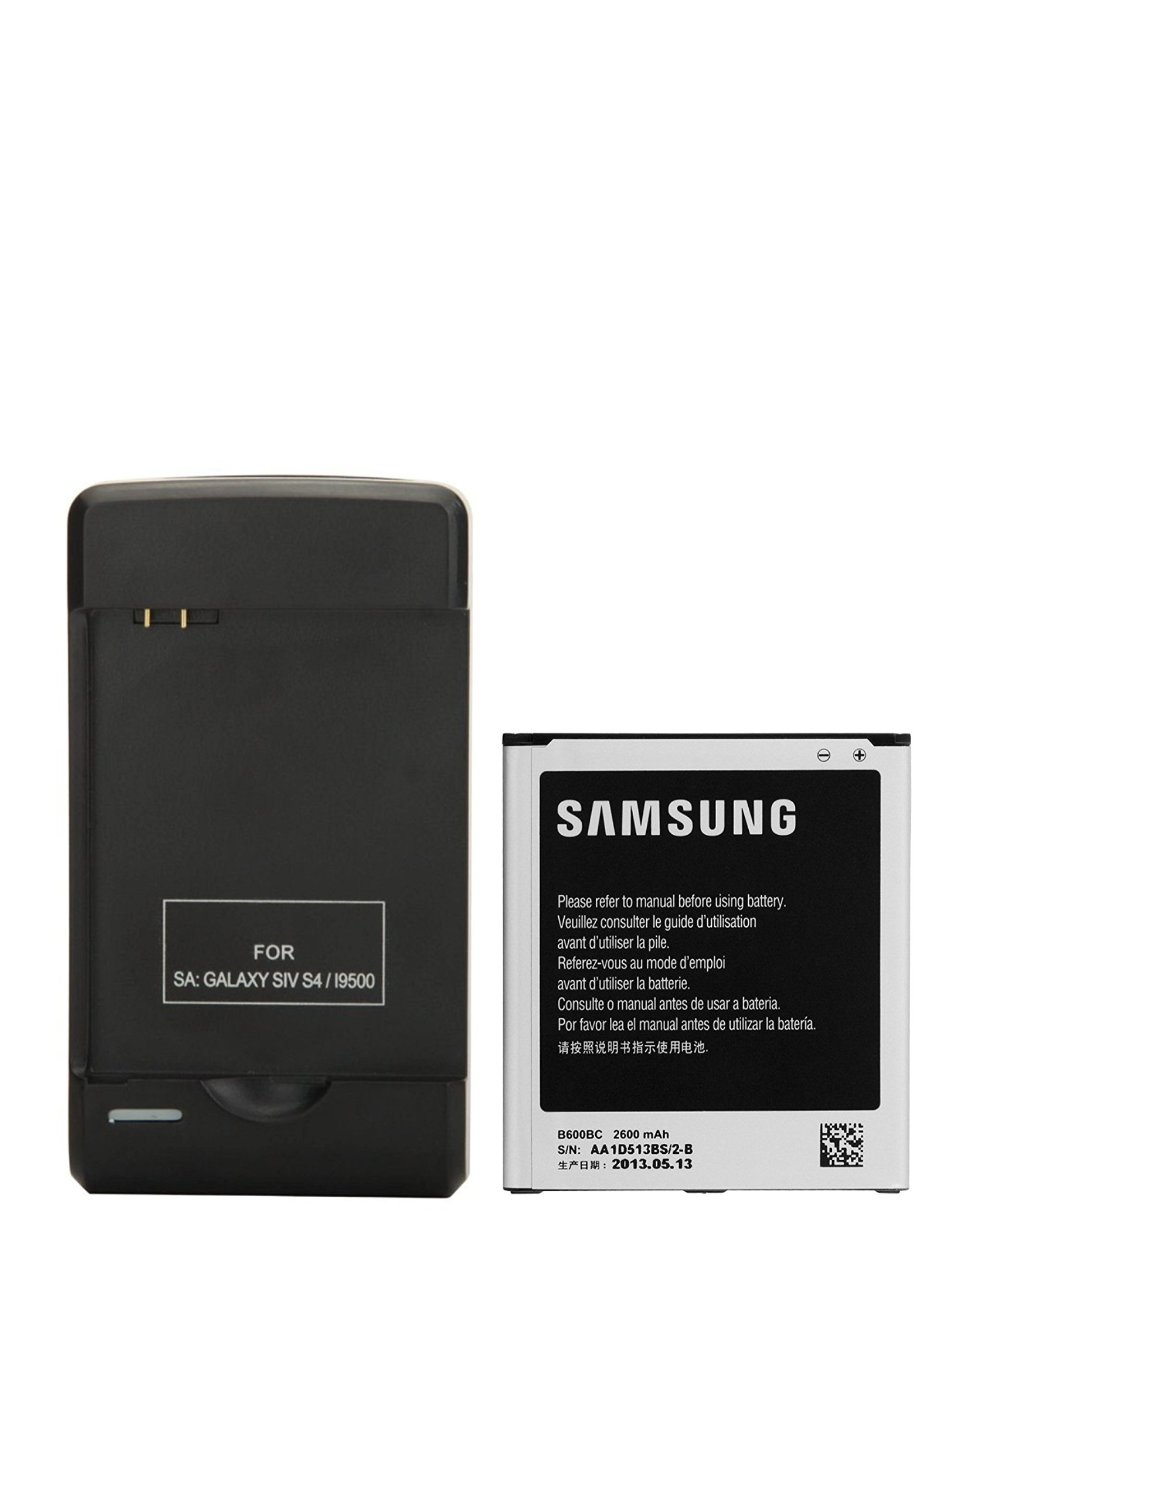 fourstarr deals USB dock wall charger + 2600mAh Li-ion rechargeable replacement battery for Samsung Galaxy S4 , GT-i9500 , GT-i9505 , SGH-M919(T-Mobile) , SCH-i545(Verizon) , SGH-i337(AT&T) , SPH-L720(Sprint), B600BC (one battery + one wall charger)